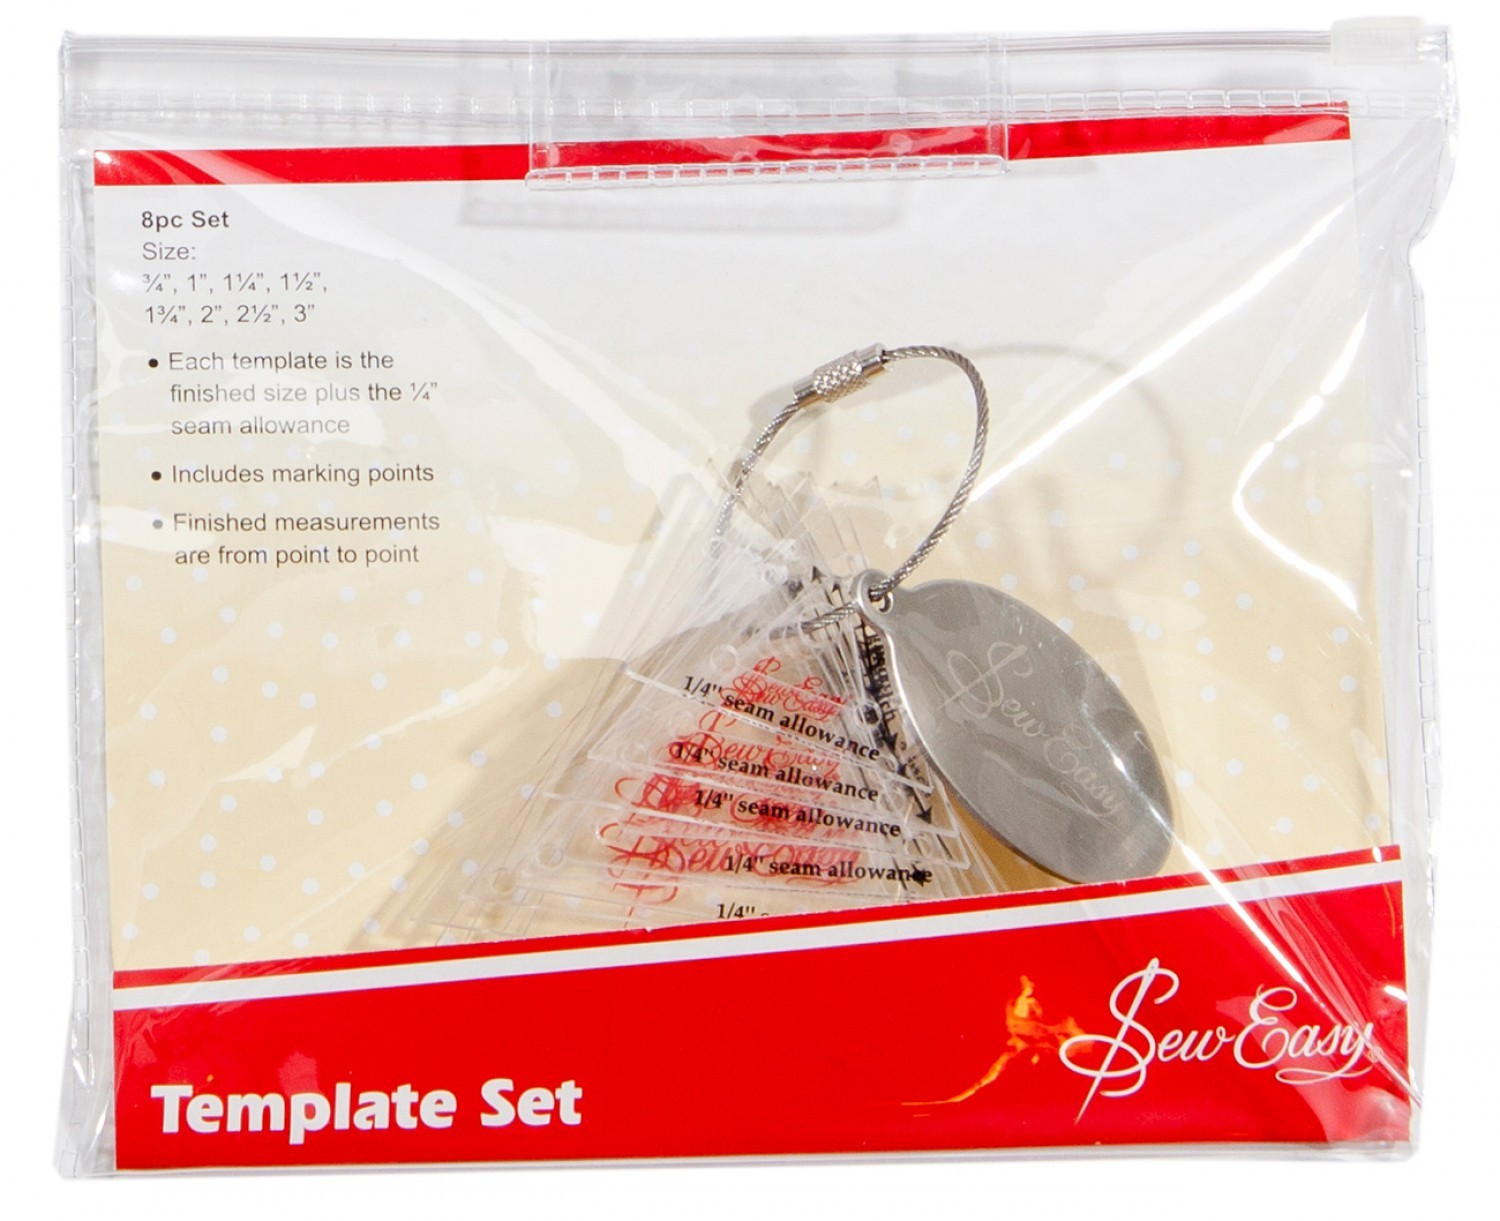 Sew Easy Template Set 8pc Size Set